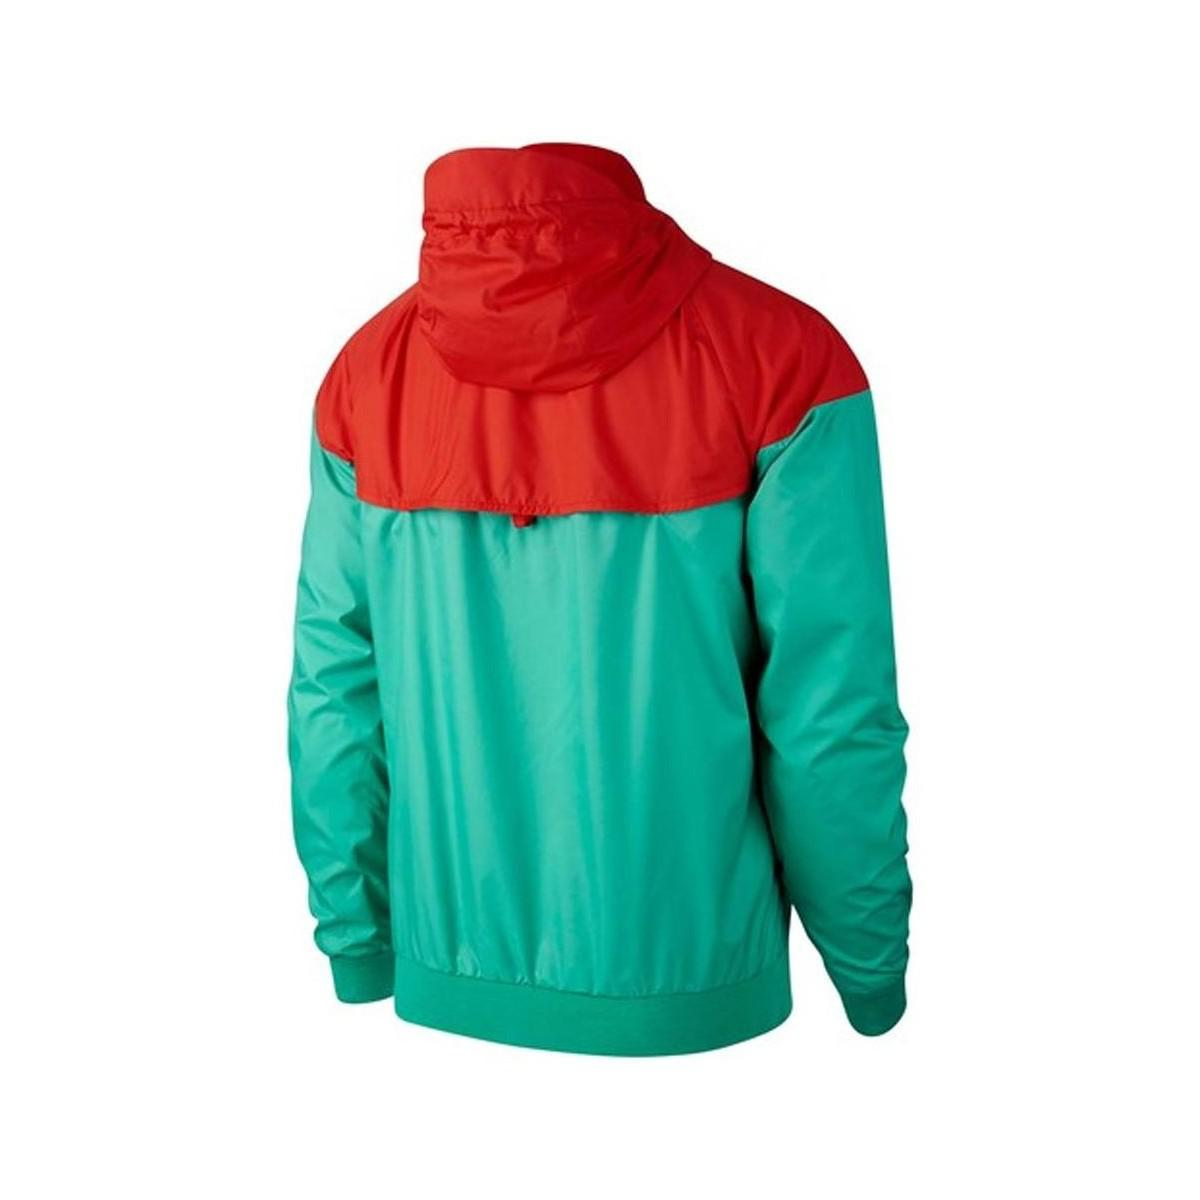 4d43f6f137e0 Nike 2018-2019 Portugal Authentic Woven Windrunner Jacket Men s In ...